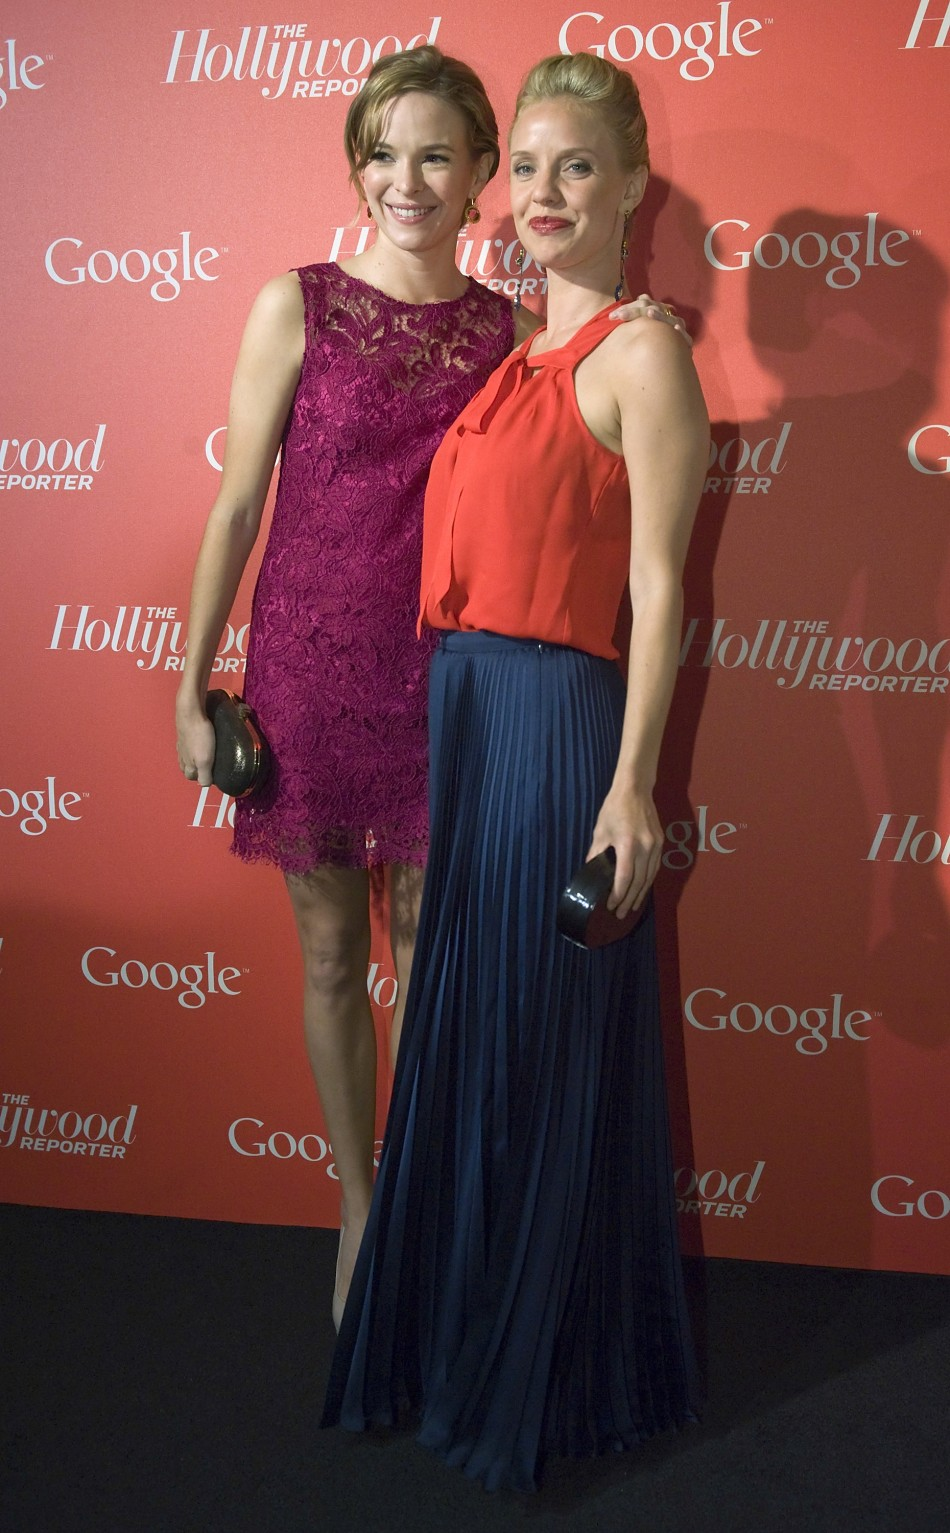 Actresses Danielle Panabaker L and Kelli Garner